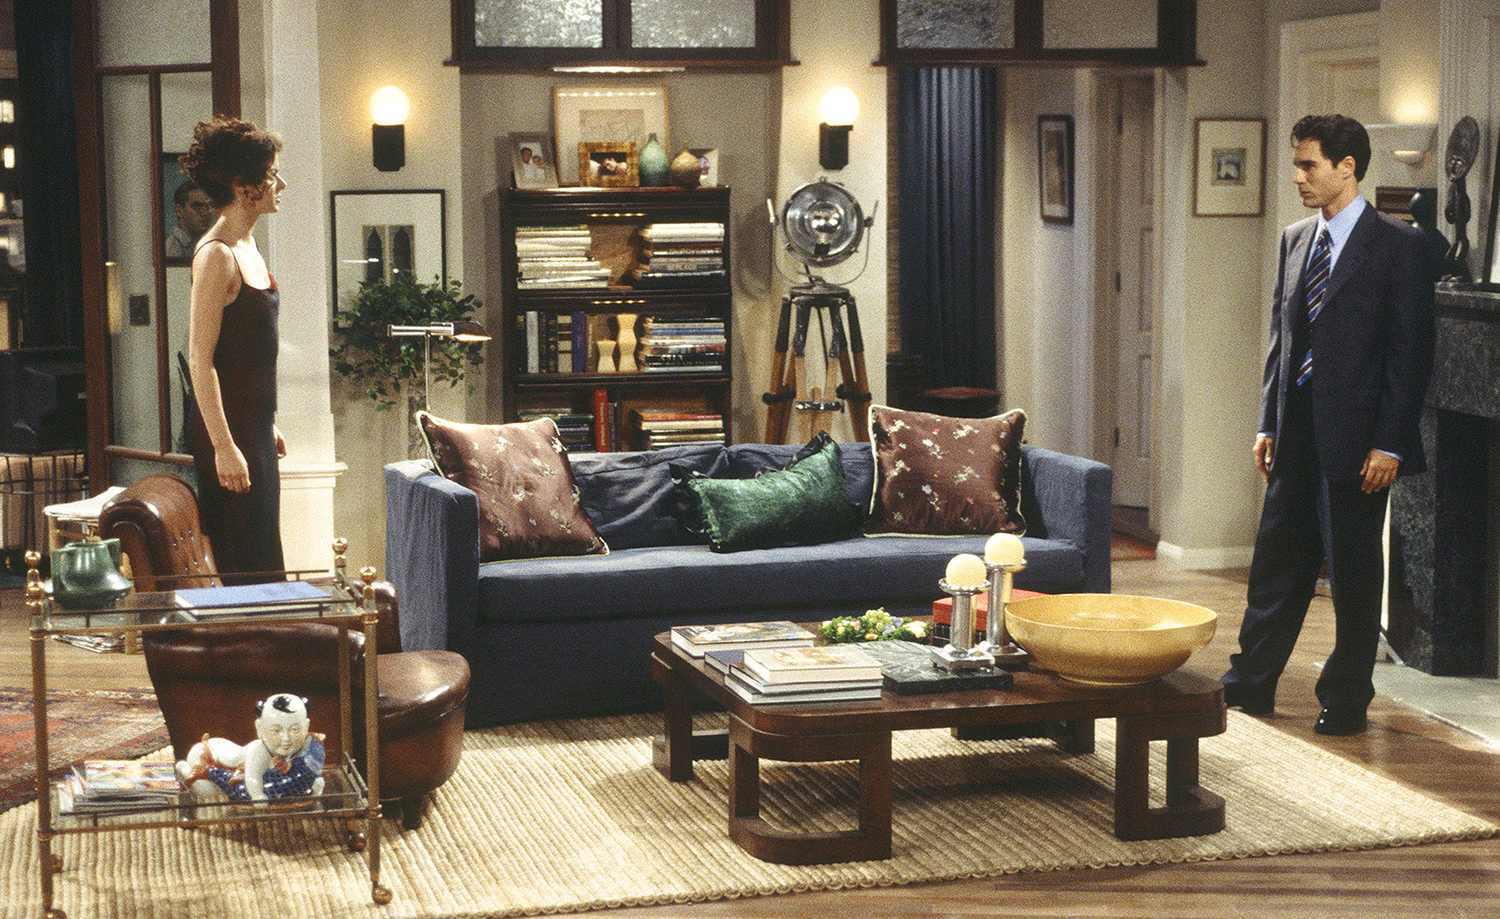 Trulia Put a Present-Day Price on Will and Grace's Apartment Ahead of the Show's 2017 Reboot